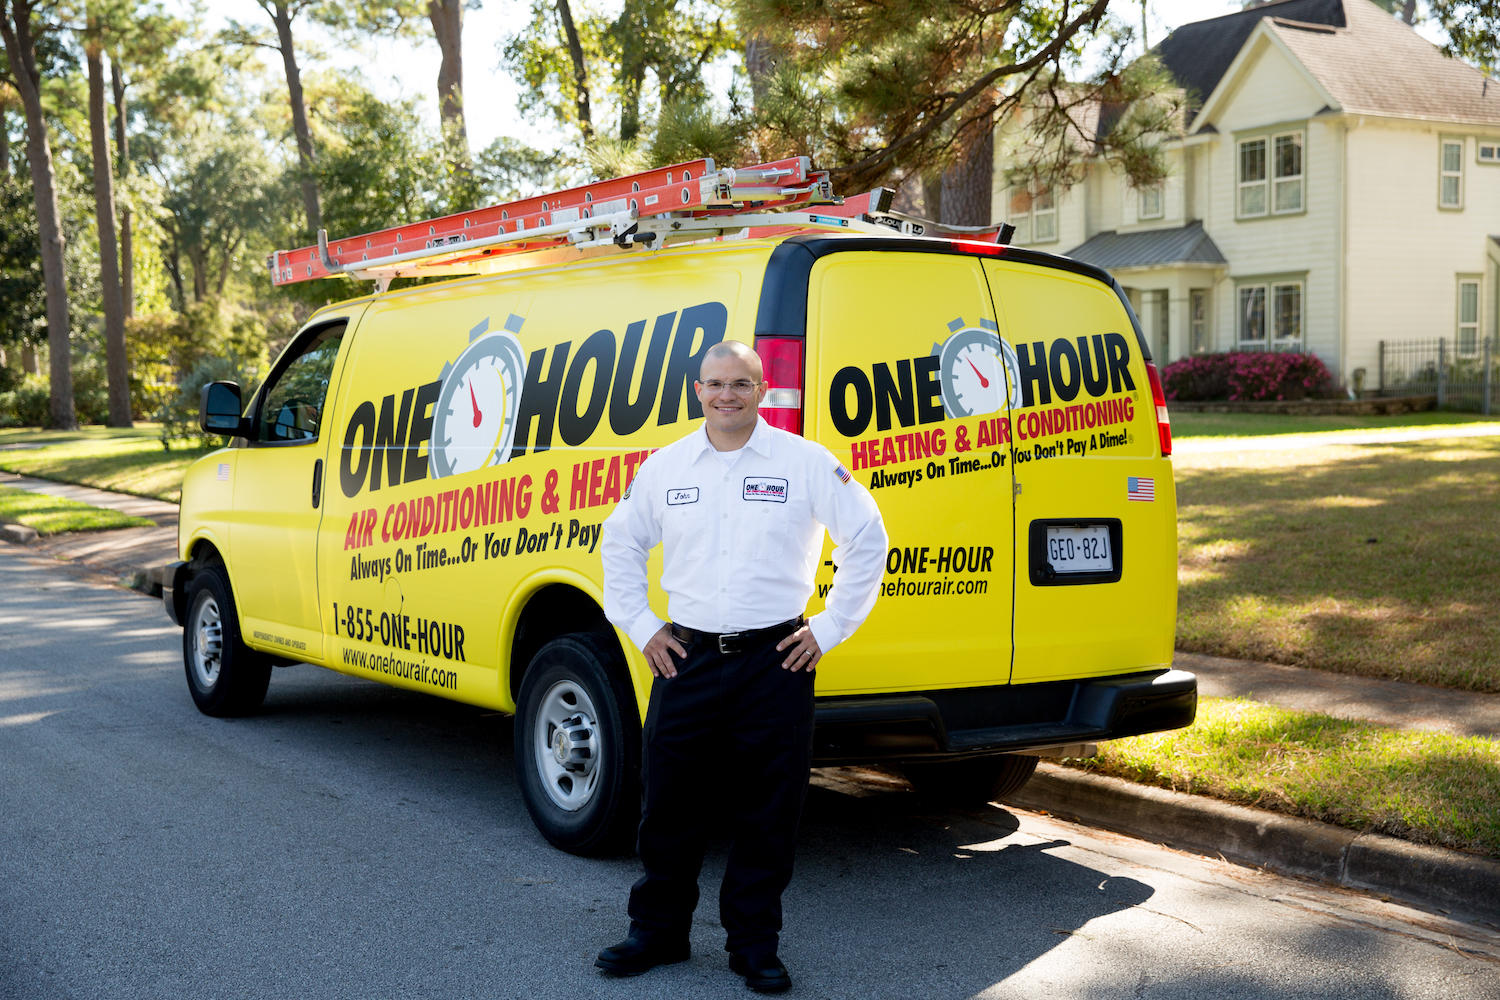 One Hour Heating & Air Conditioning image 1